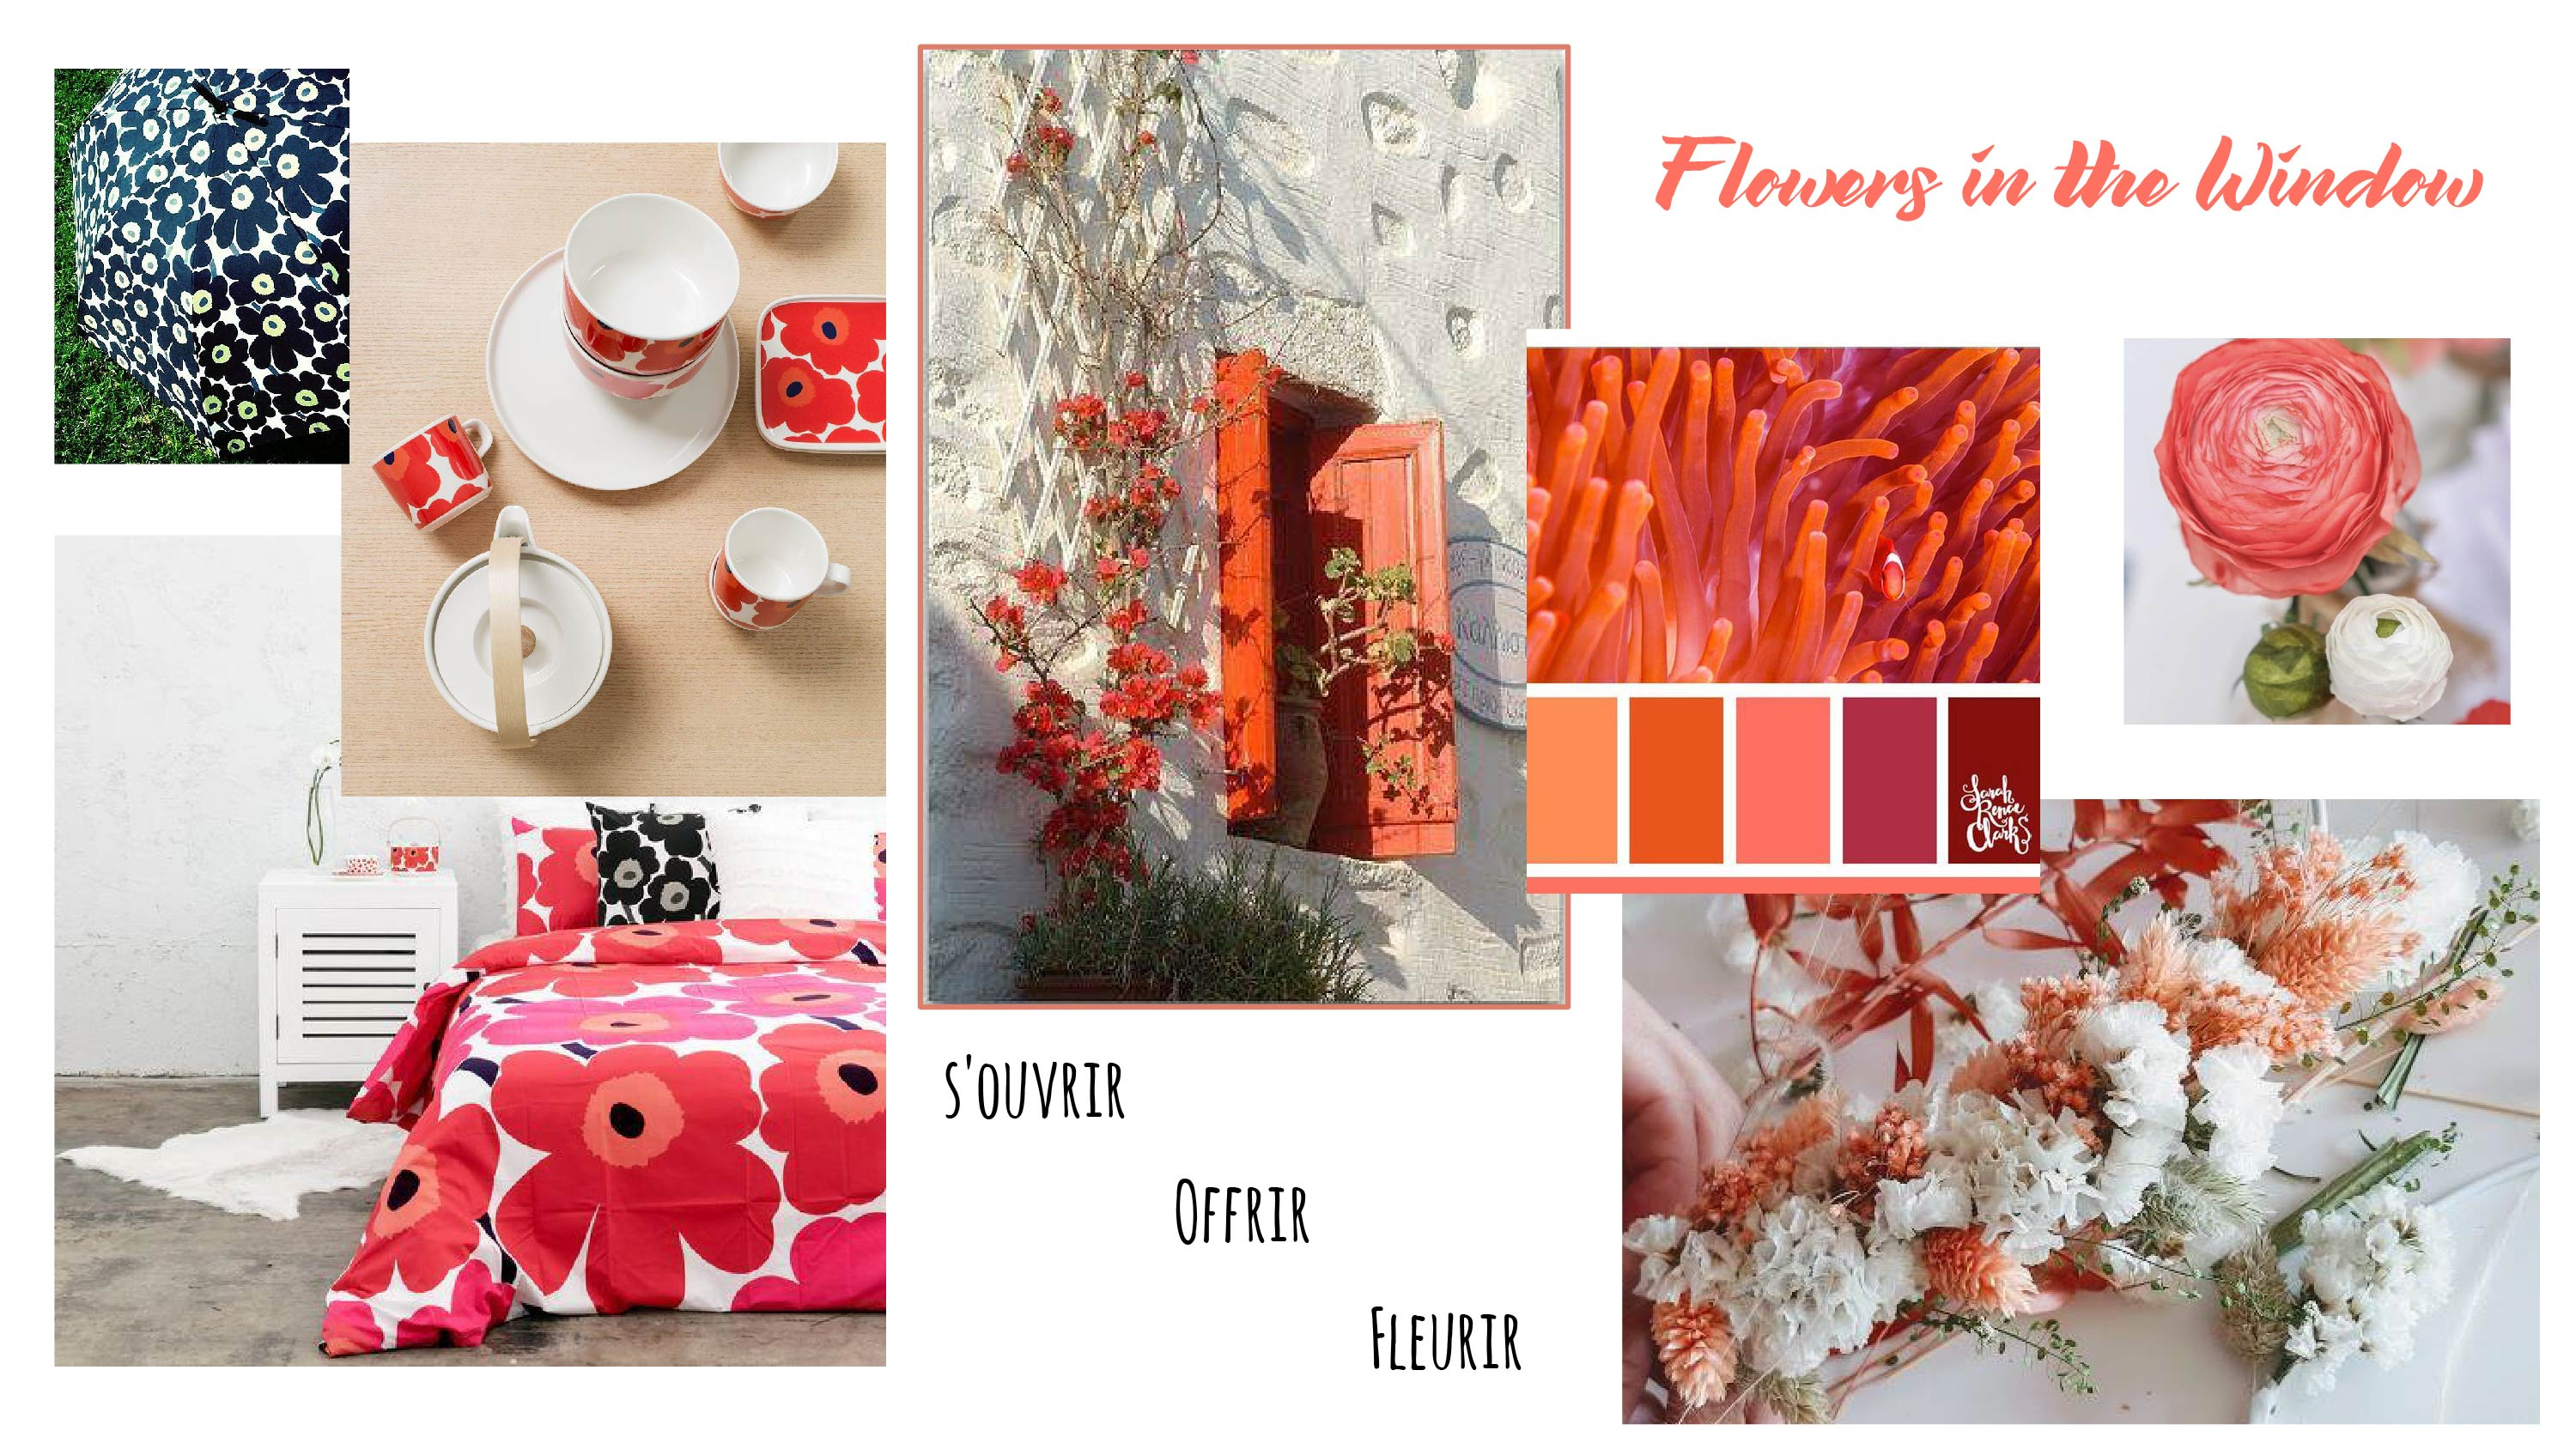 Planche ambiance - Flowers in the Window-01